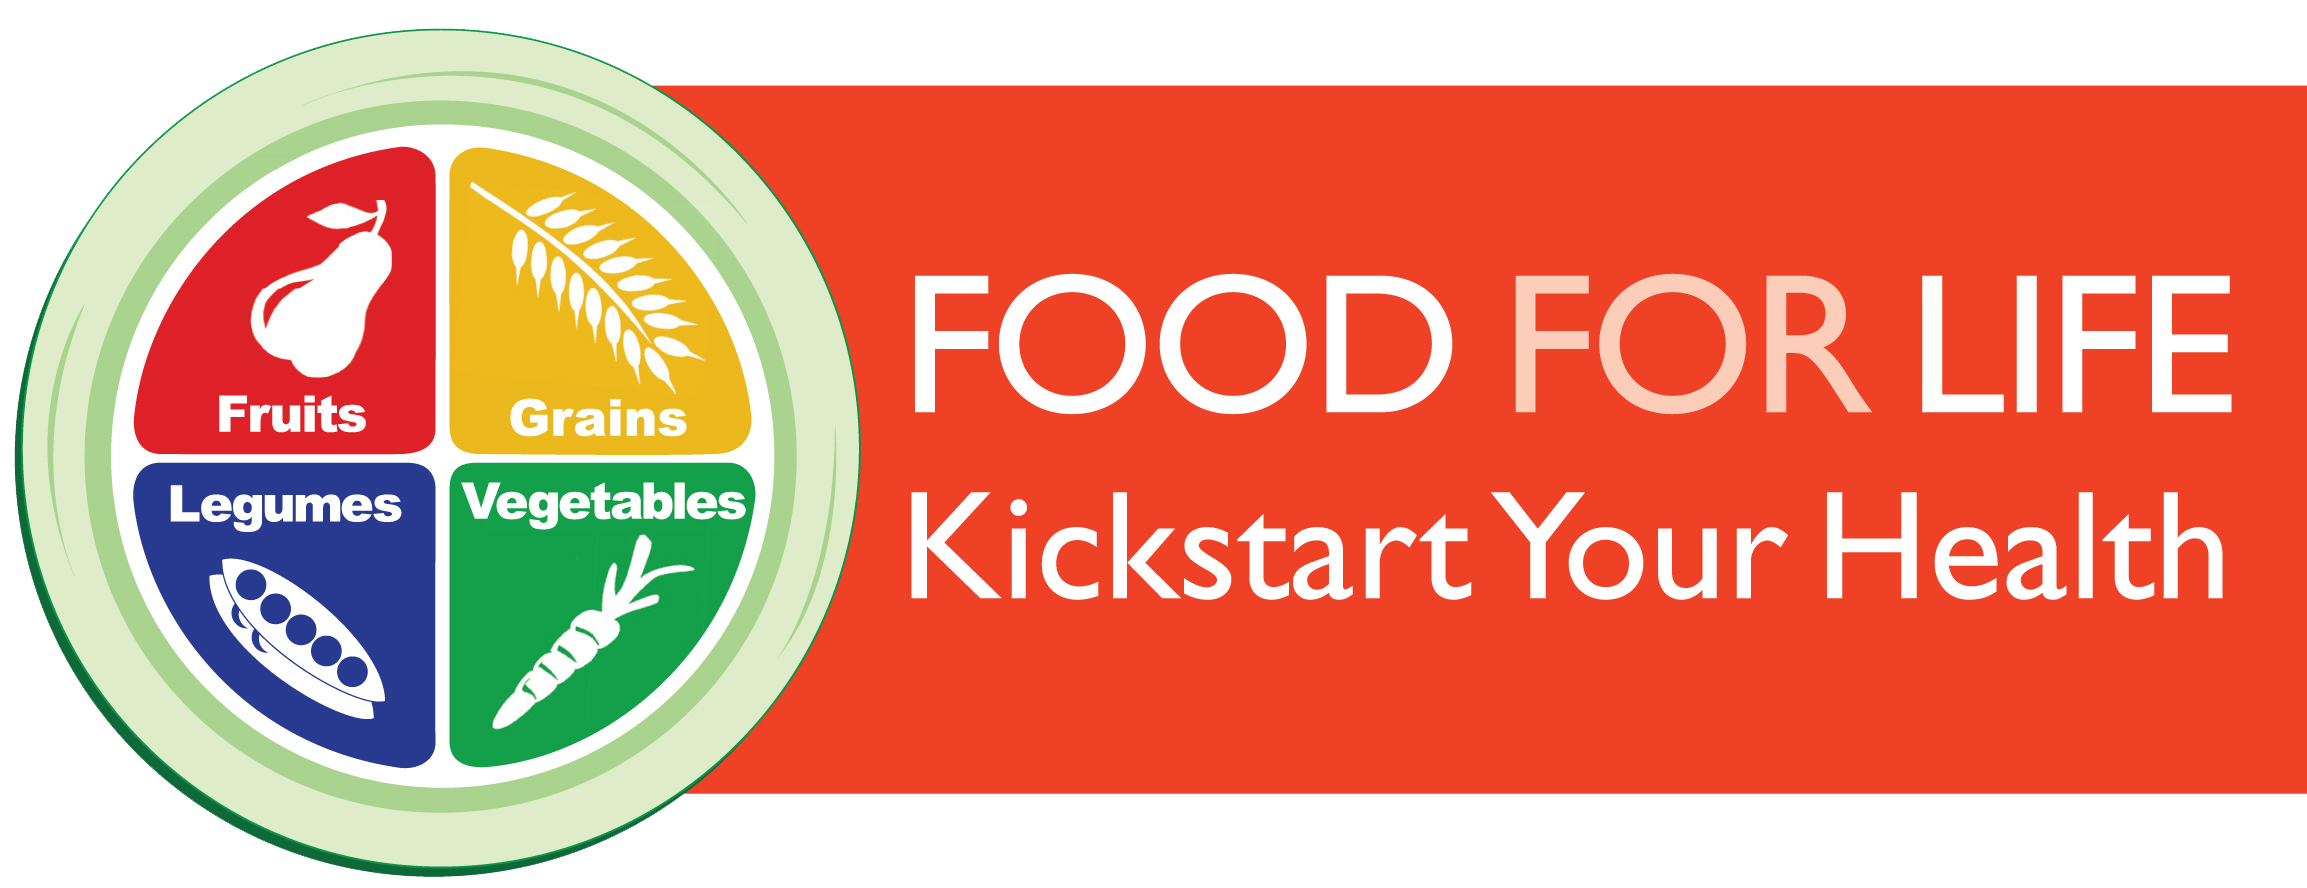 Nutritous Way Food For Life Kickstart your Health